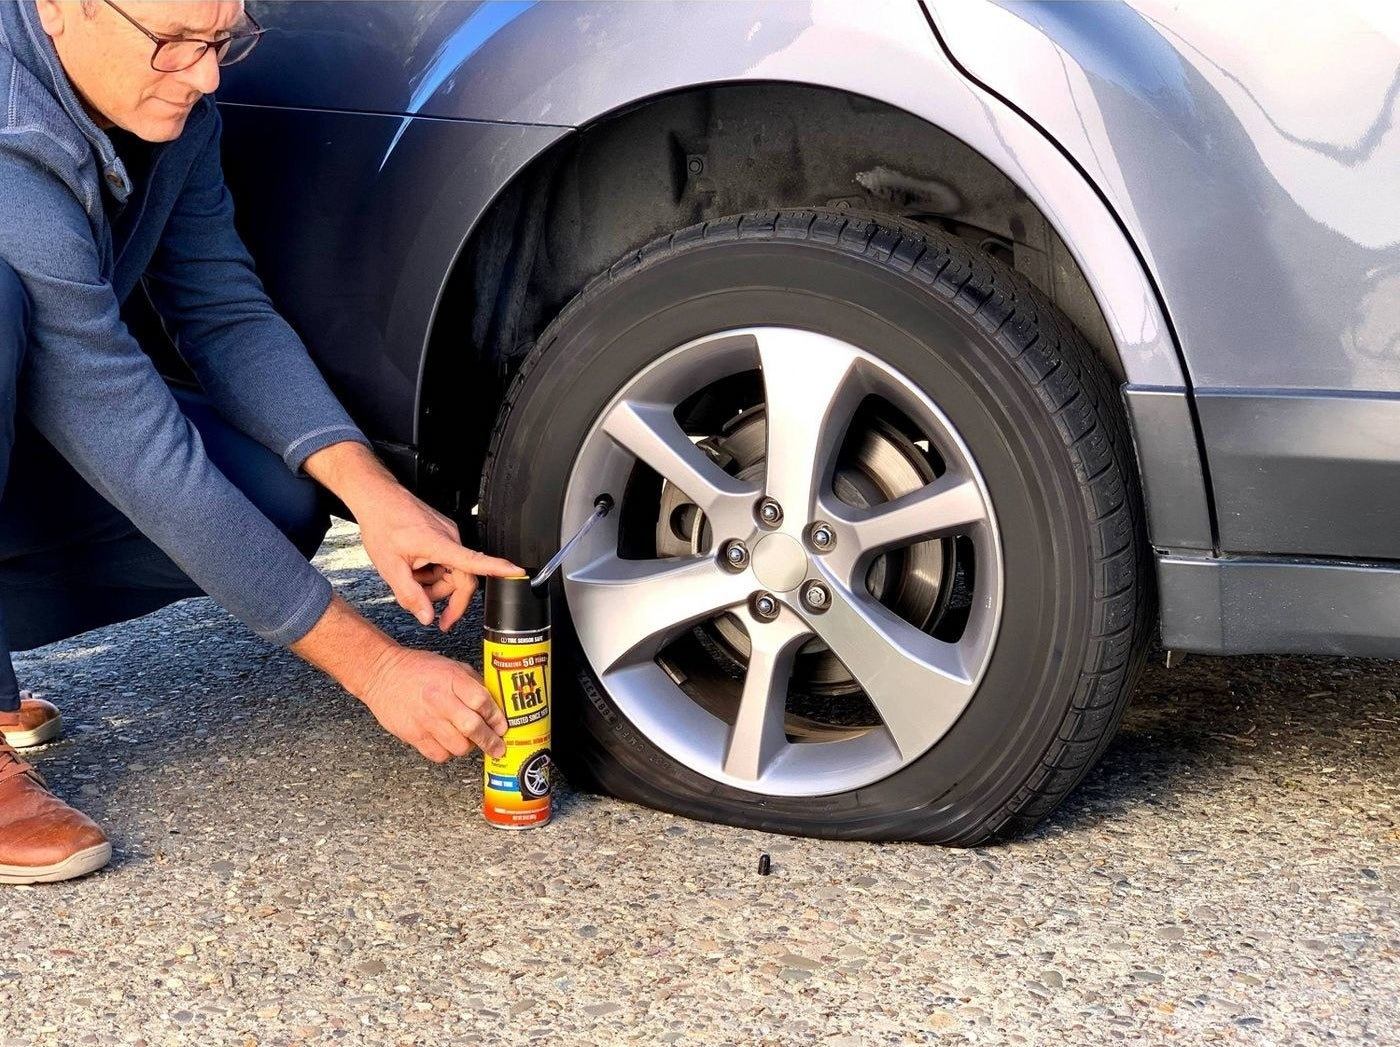 a person using the fix a flat to inflate the tire